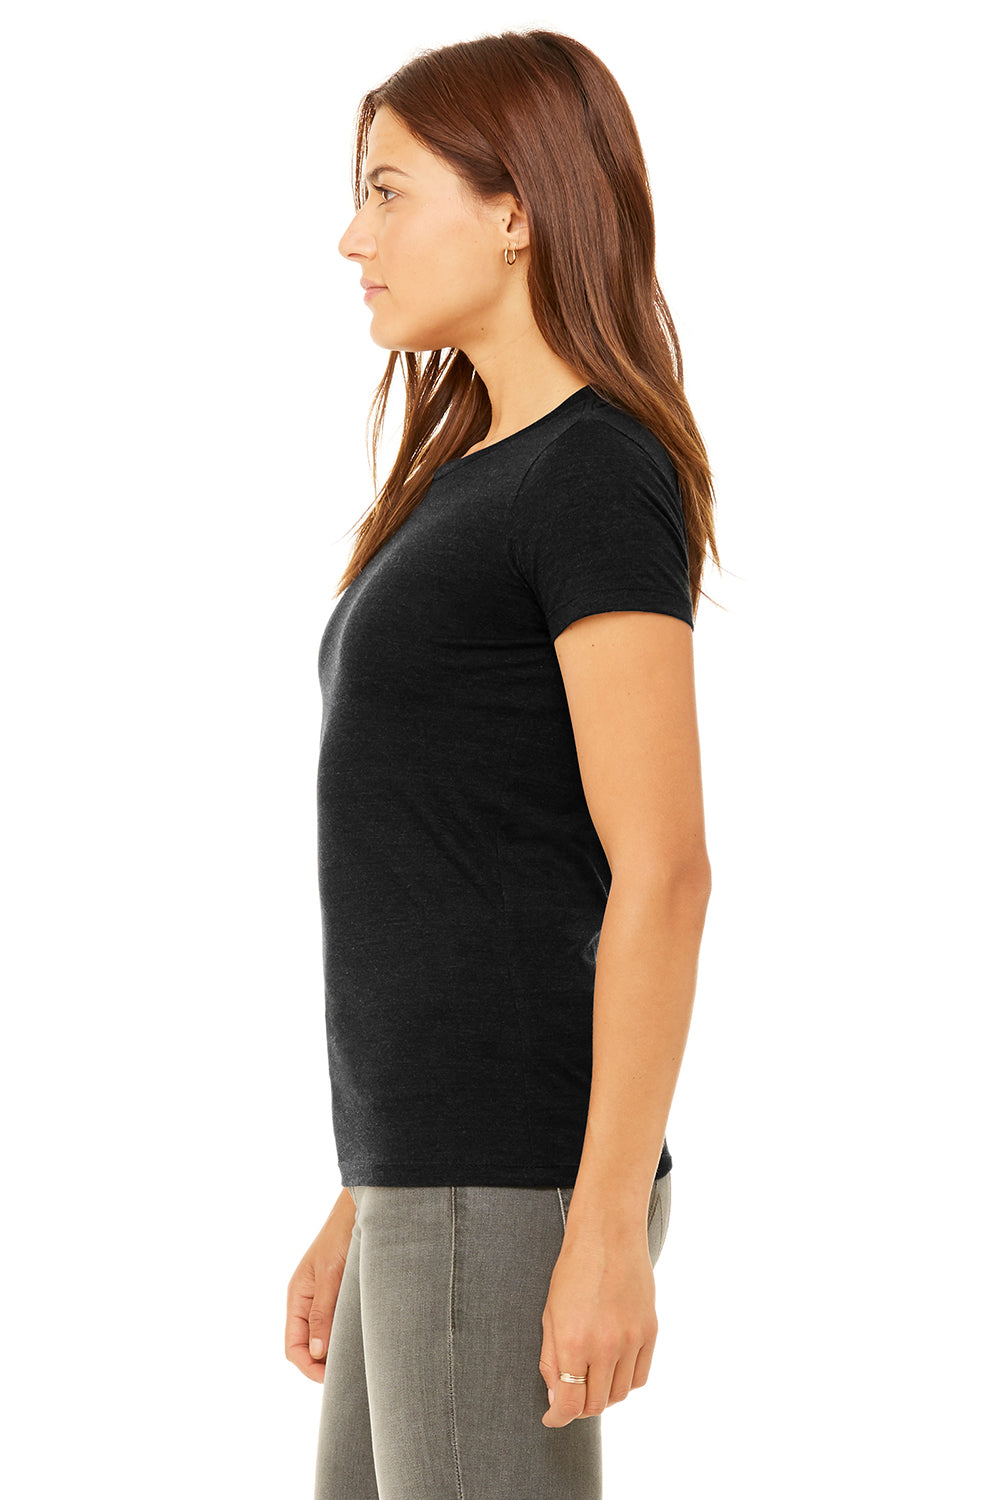 Bella + Canvas 6004 Womens The Favorite Short Sleeve Crewneck T-Shirt Heather Black Side